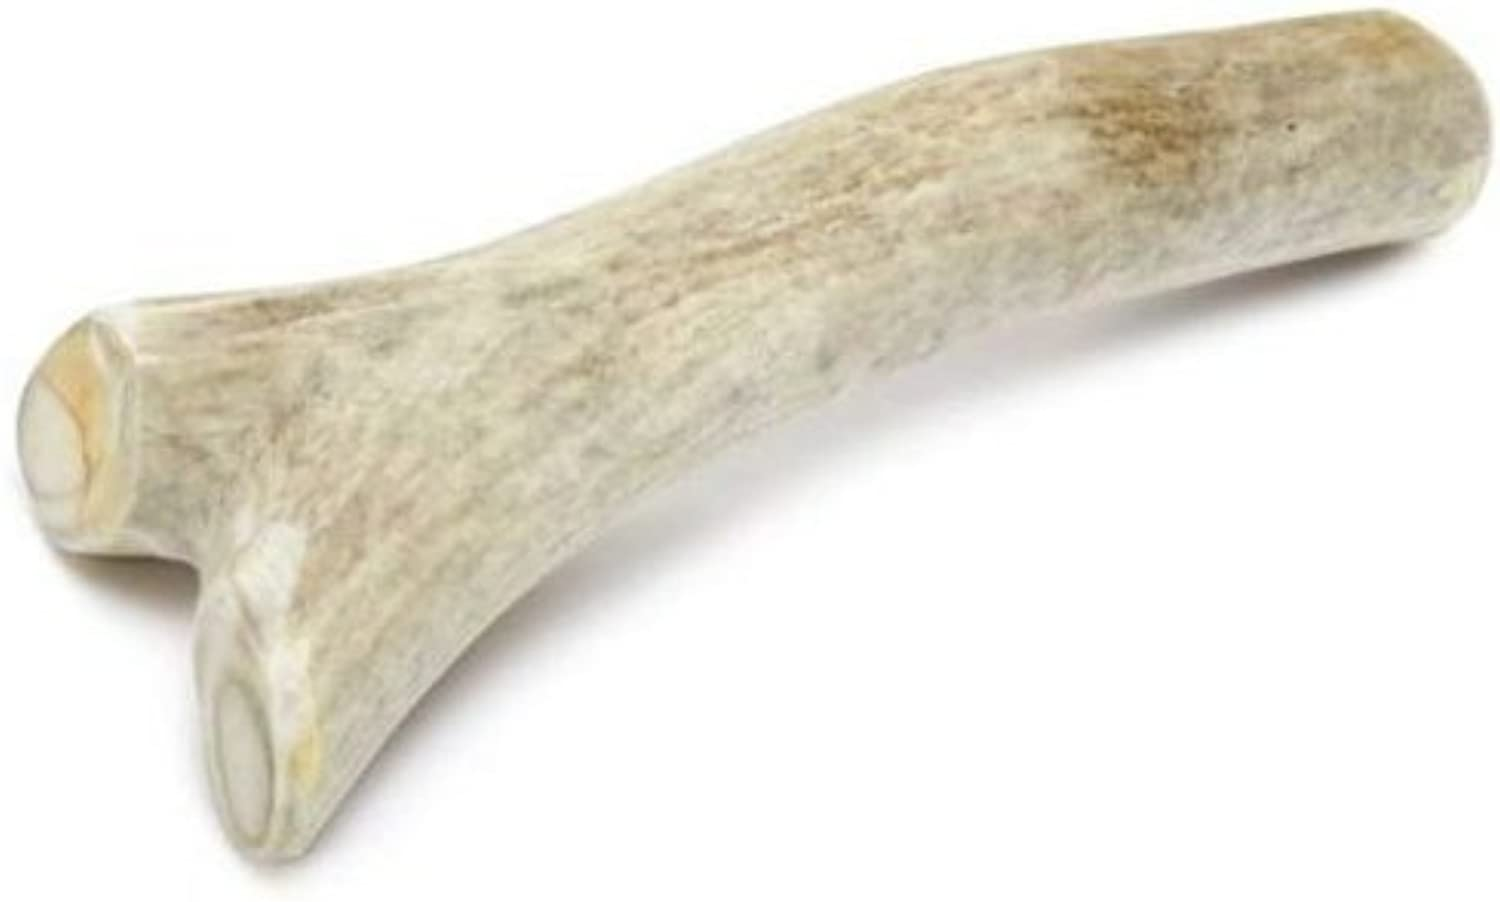 Ranch Rewards 8 to 9Inch Deer Antler Chew, Large by Ranch Rewards